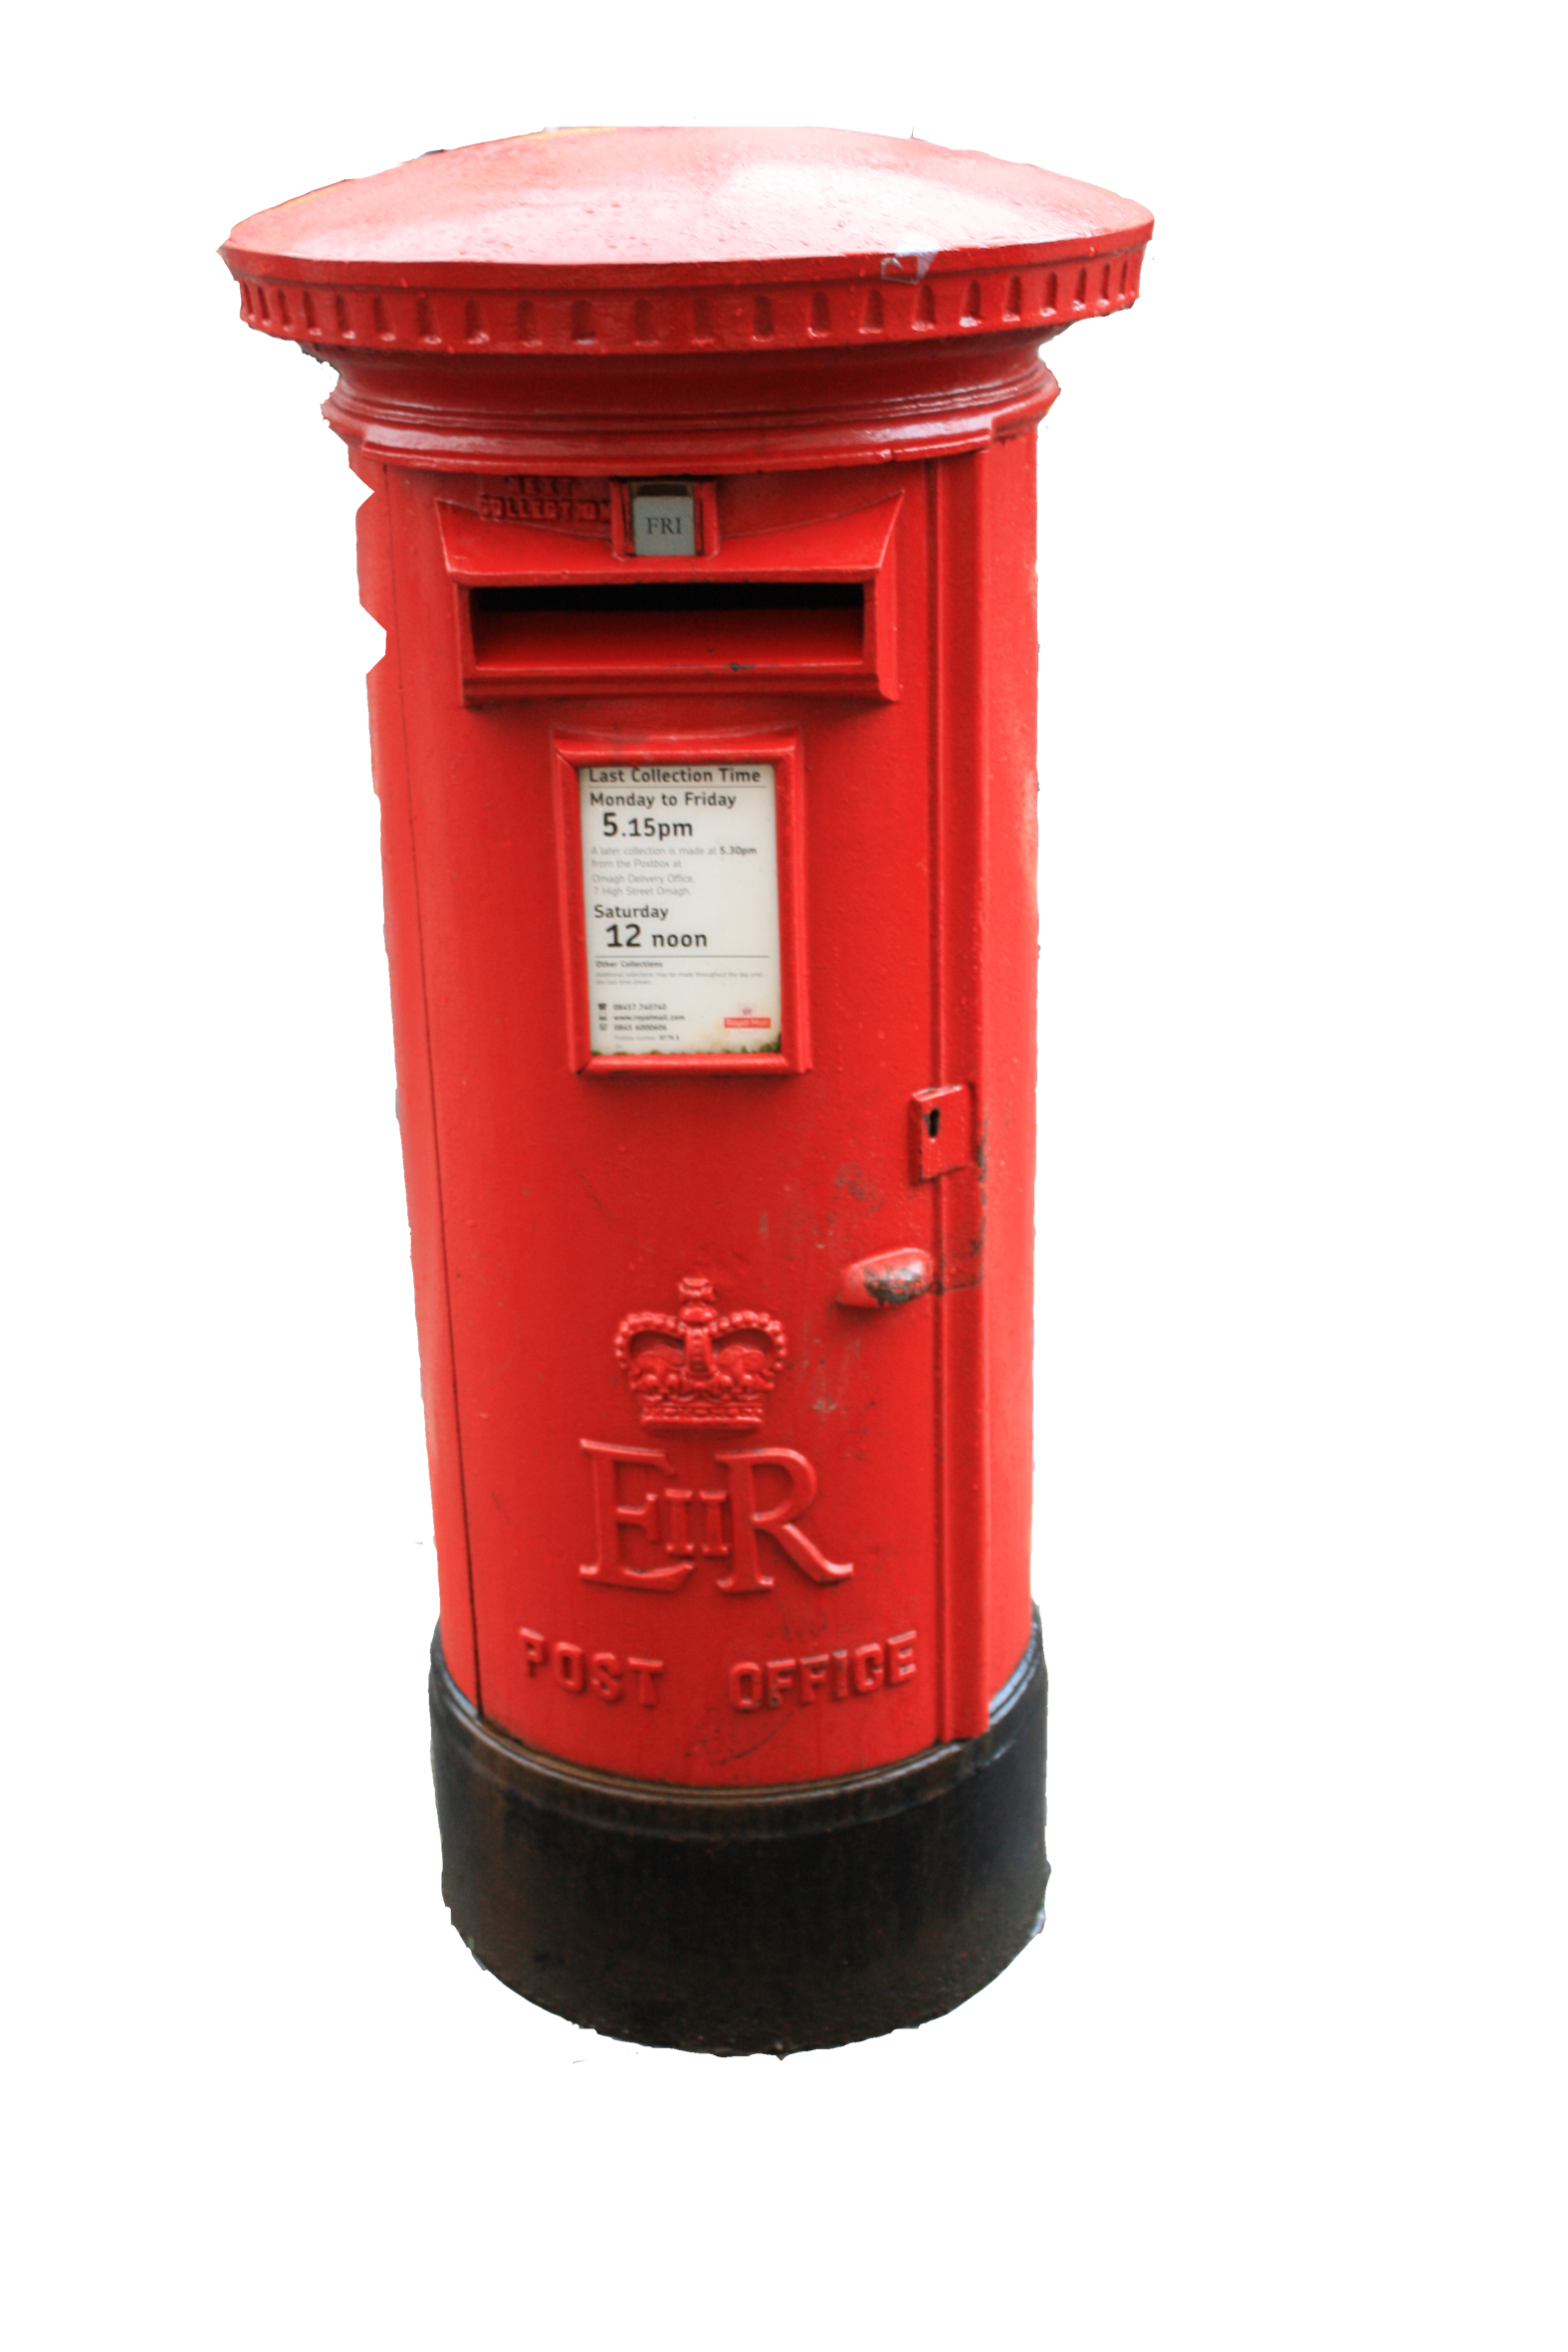 Postbox Png Image Post Box Antique Mailbox Letter Box